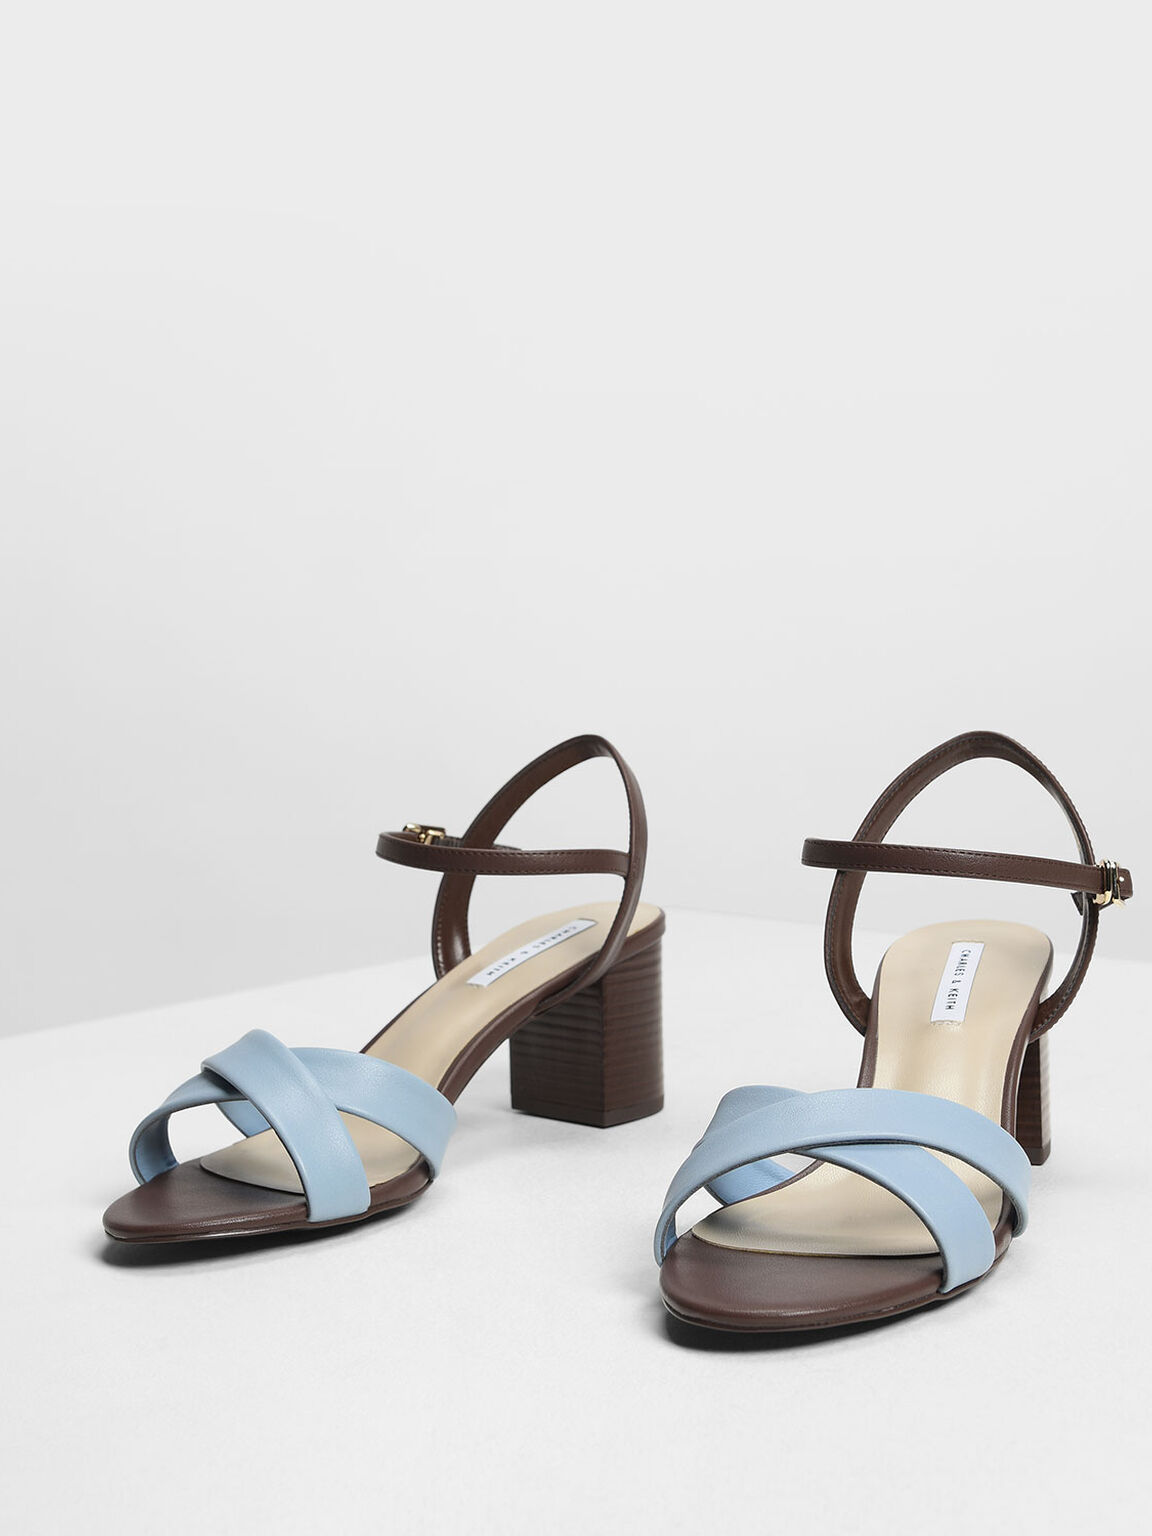 Criss-Cross Two Tone Block Heel Sandals, Blue, hi-res